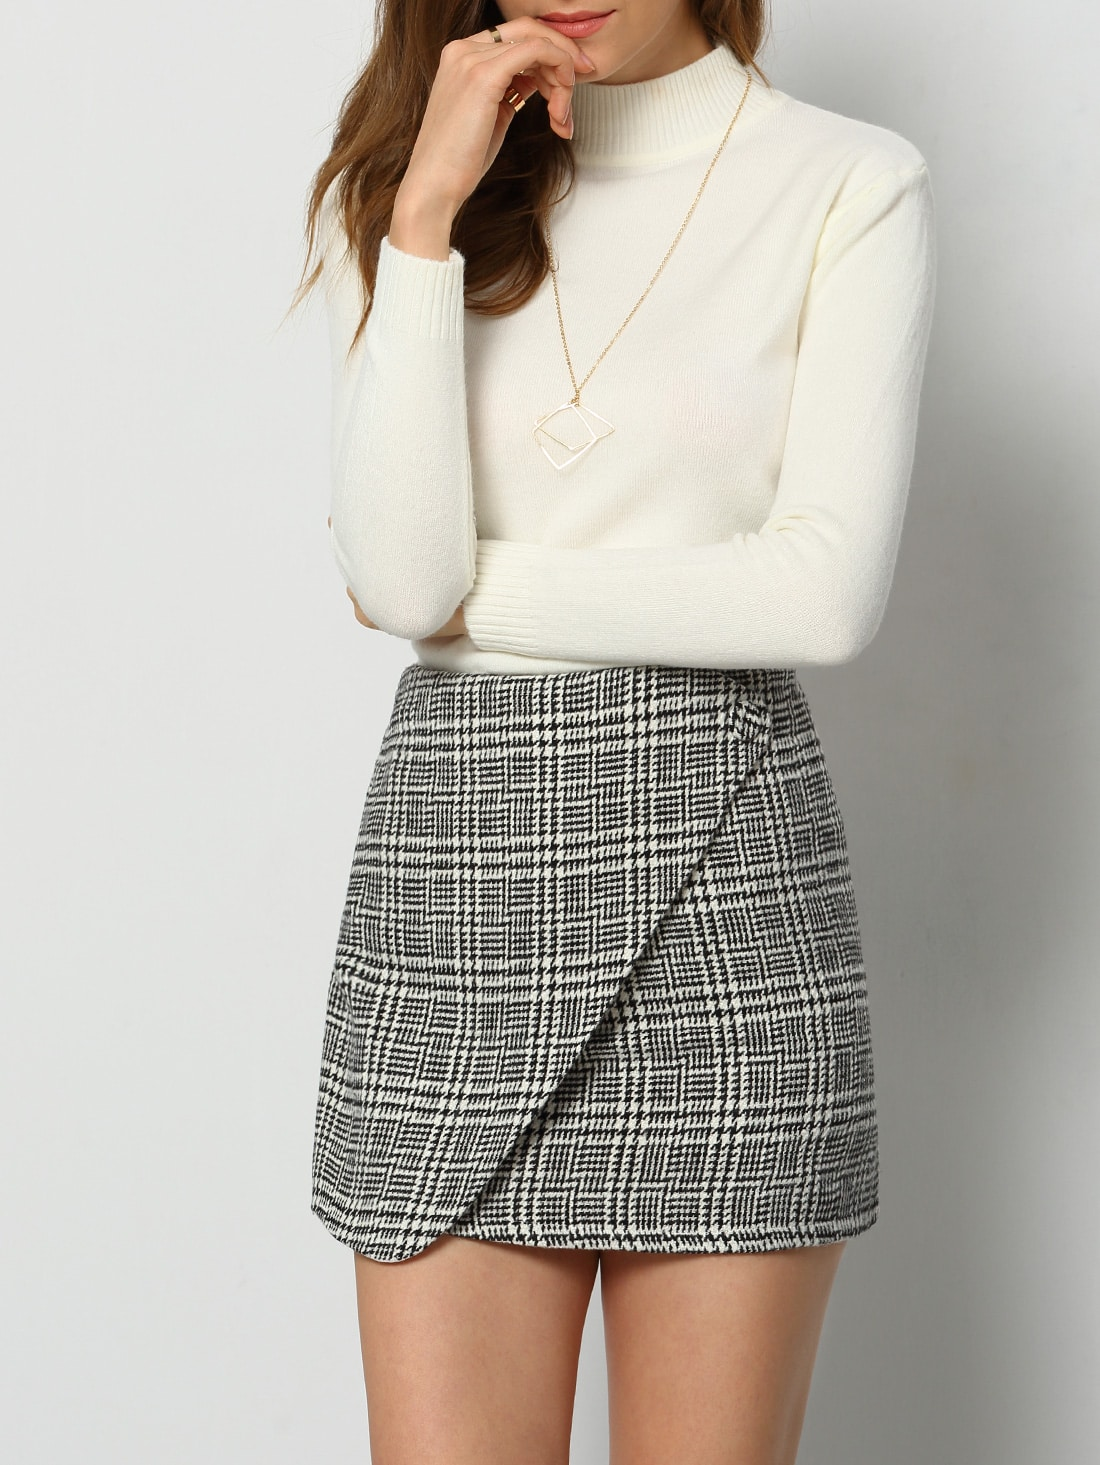 Black White Houndstooth Skirt -SheIn(Sheinside)